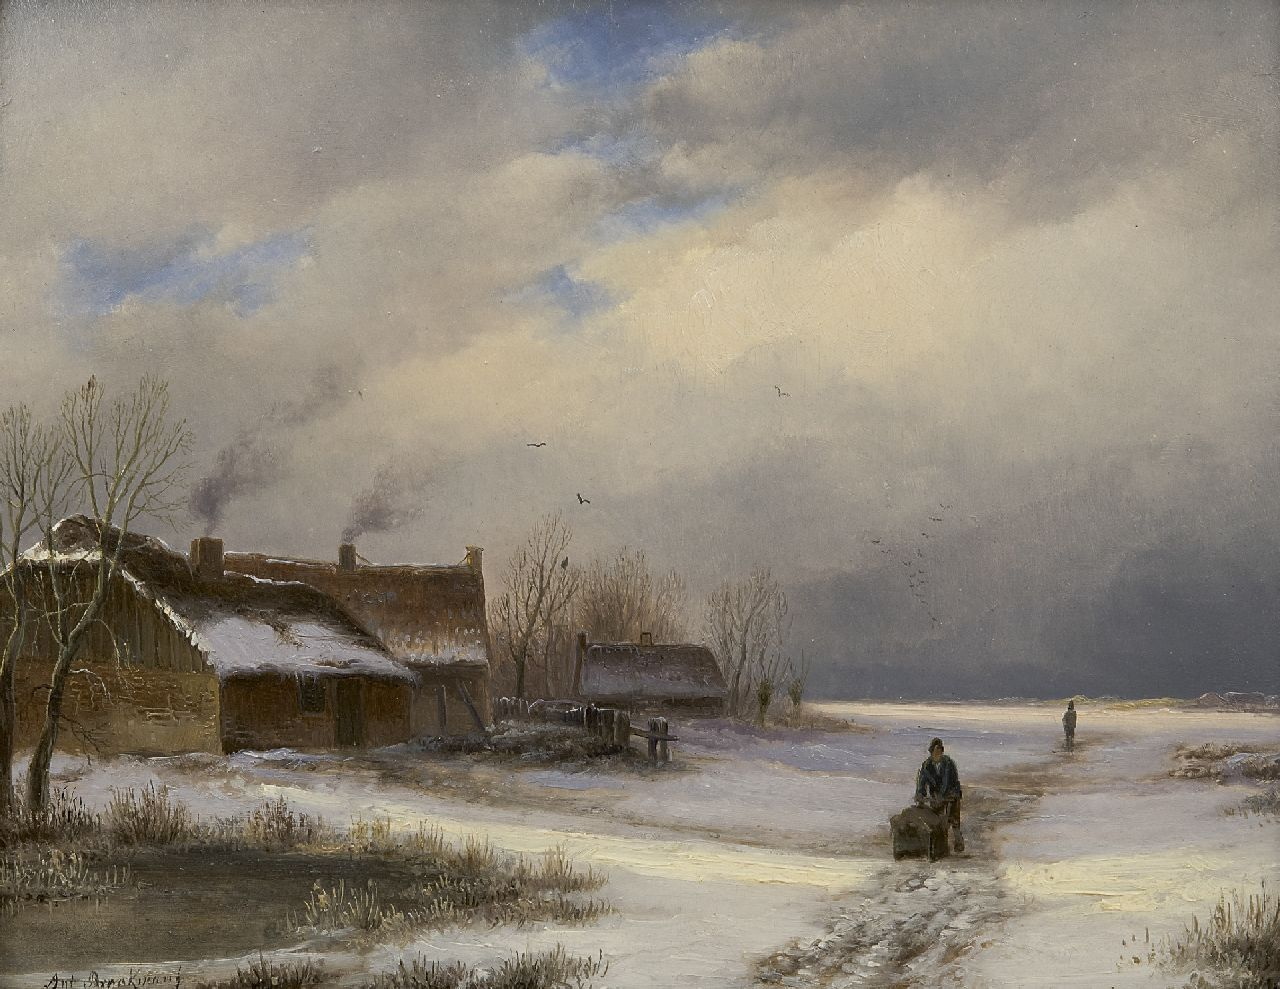 Braakman A.  | Anthonie 'Anton' Braakman | Paintings offered for sale | Farmhouse in the snow, oil on panel 18.5 x 23.1 cm, signed l.l.